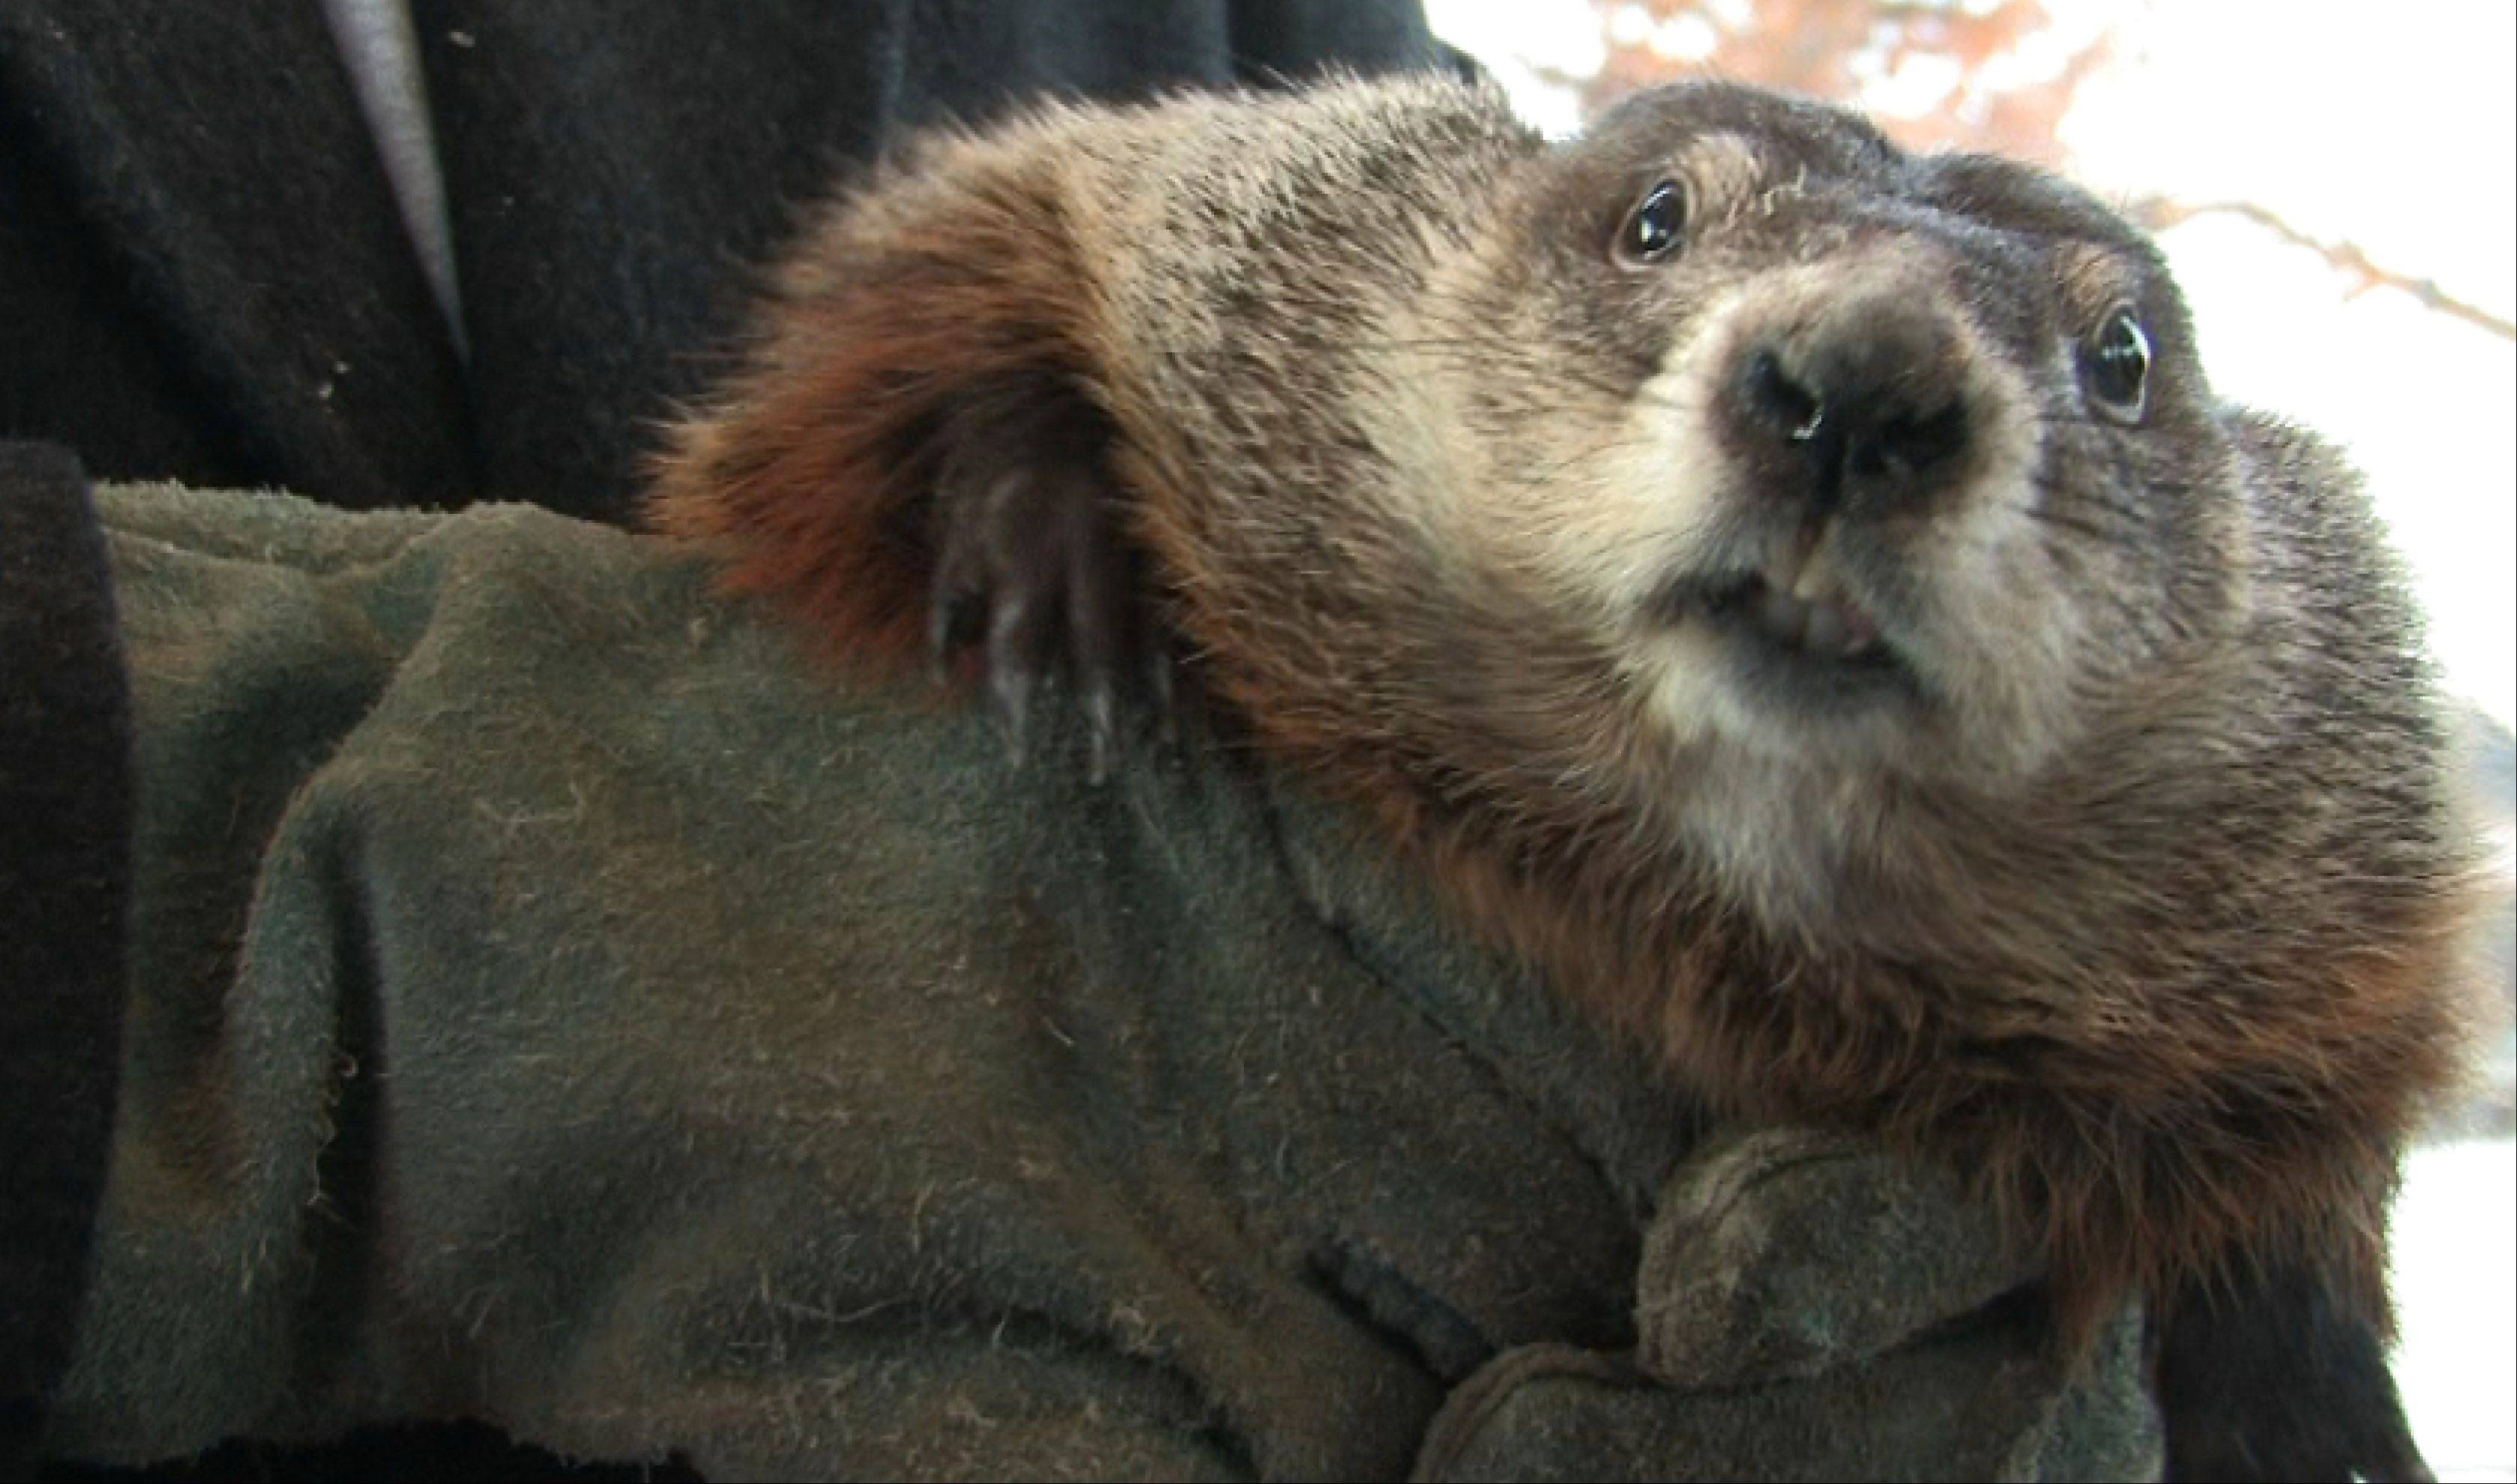 Groundhog Day, which falls every year on Feb. 2, will be celebrated this weekend in a few locations in the Chicago area, with the biggest event taking place in Woodstock. Here are the highlights